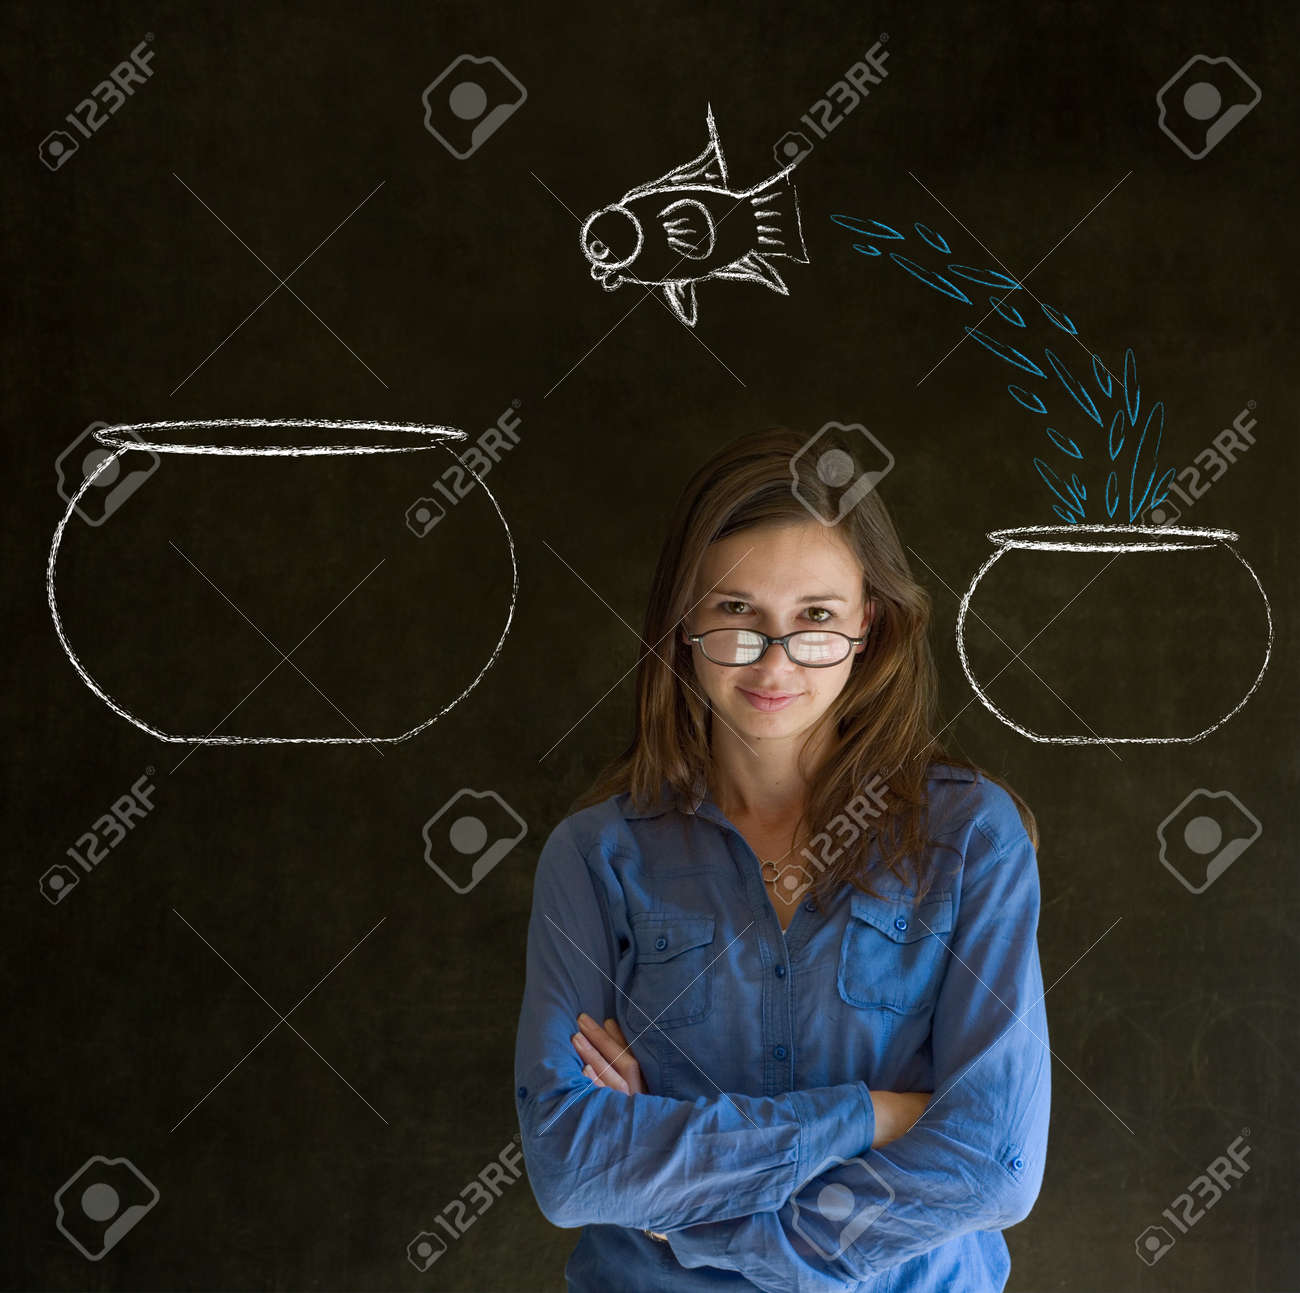 Business woman, student or teacher with fish jumping from small bowl to big bowl on blackboard background Stock Photo - 18870255